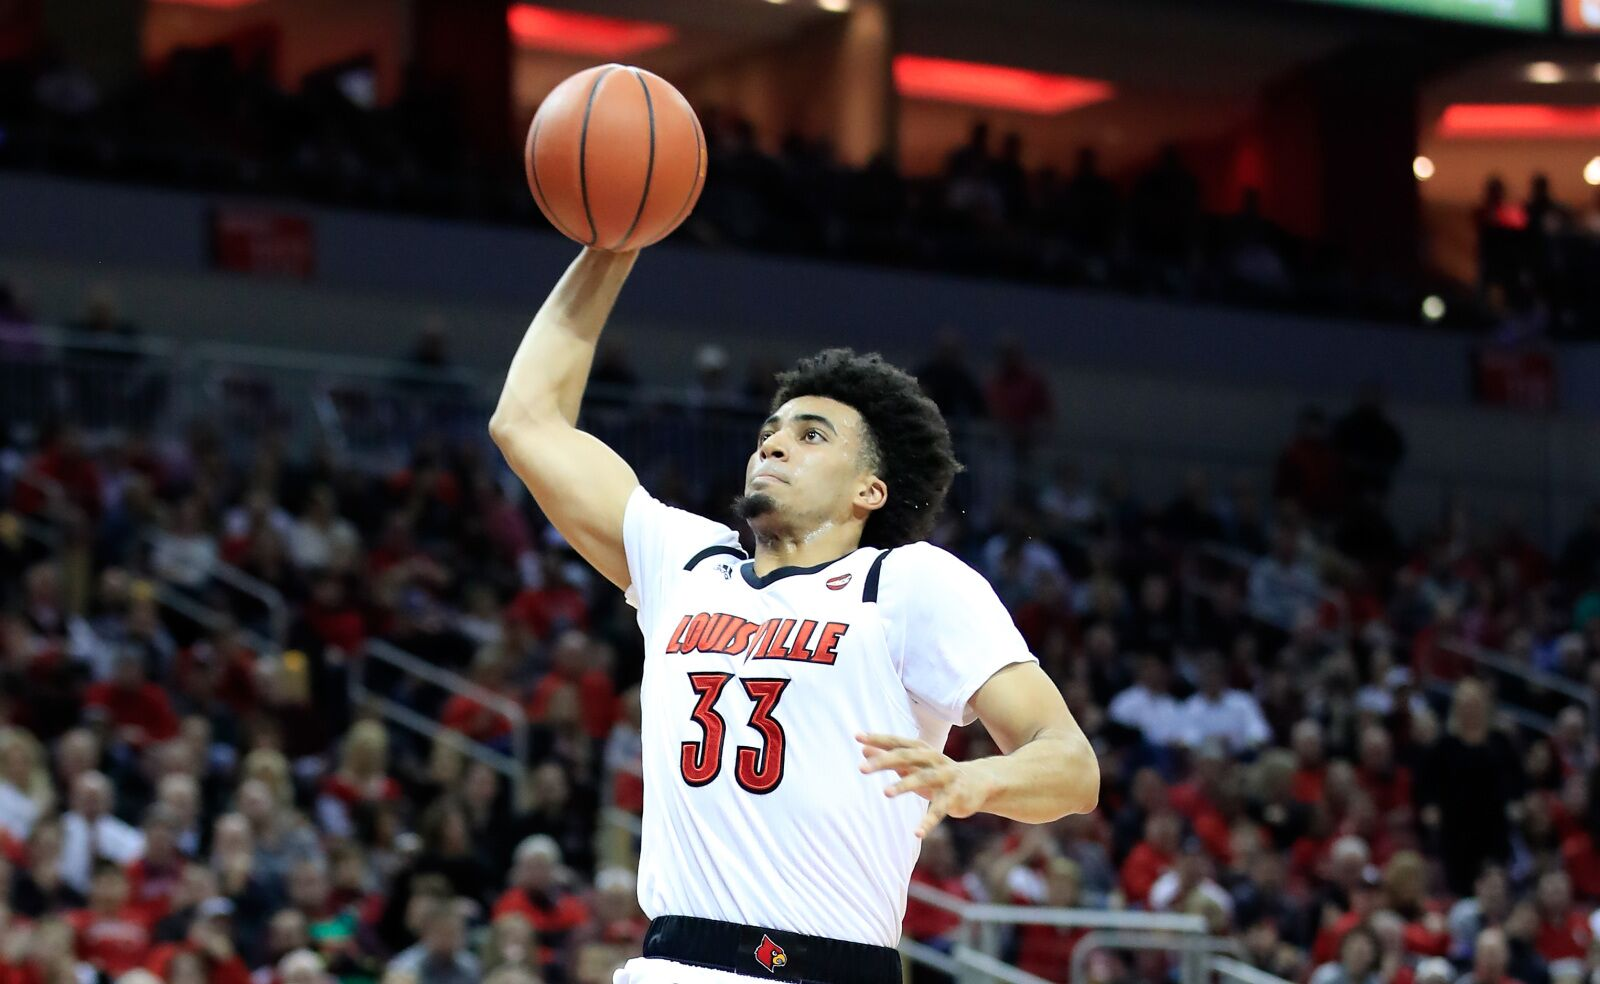 NC State vs Louisville: 2018-19 College basketball game preview, TV schedule